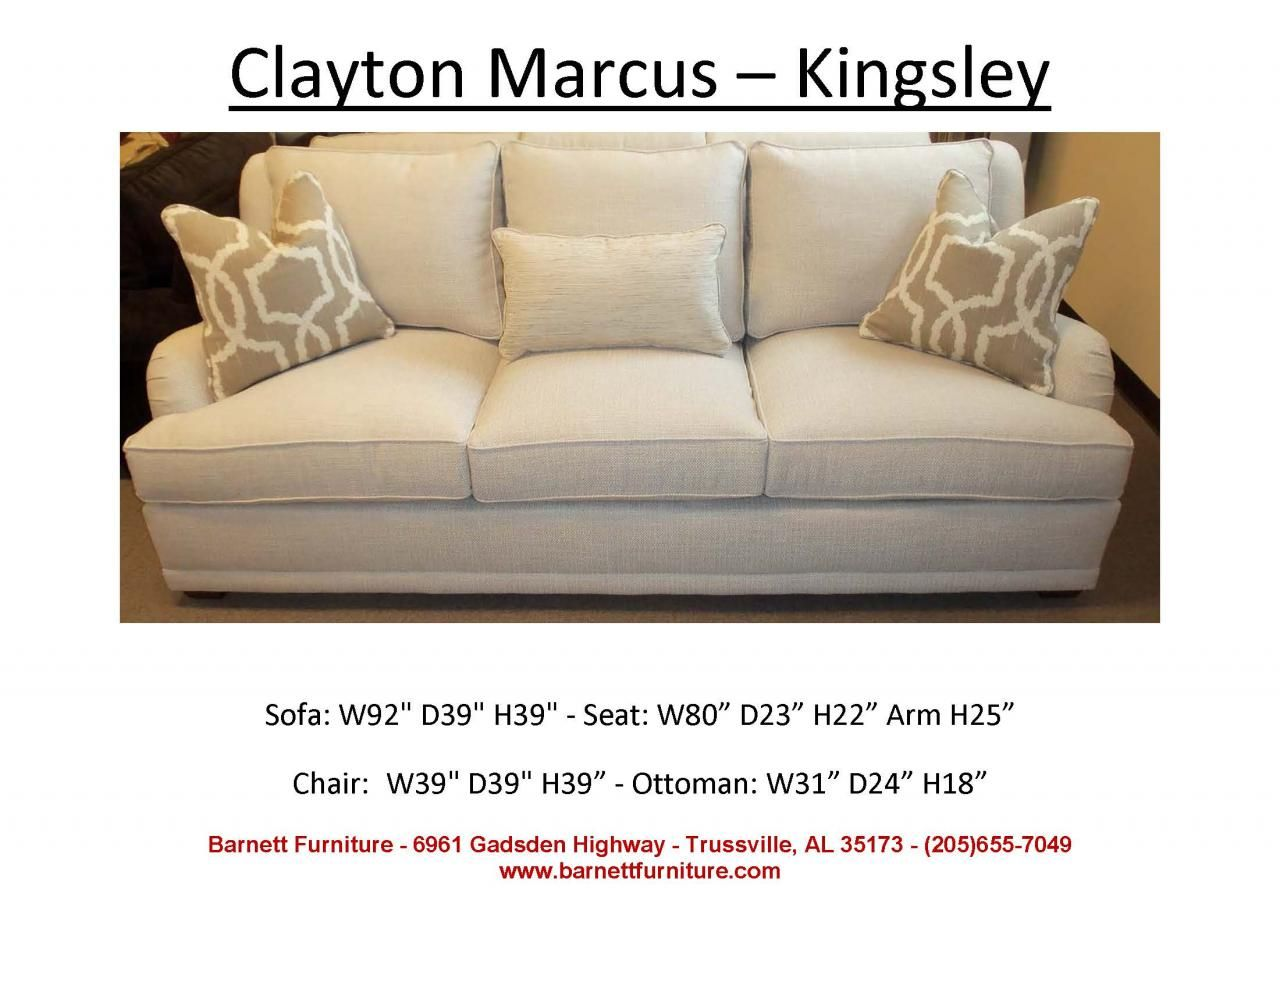 clayton marcus furniture clayton marcus sofas. Clayton Marcus Kingsley Sofa. You Choose The Fabric. Furniture Sofas